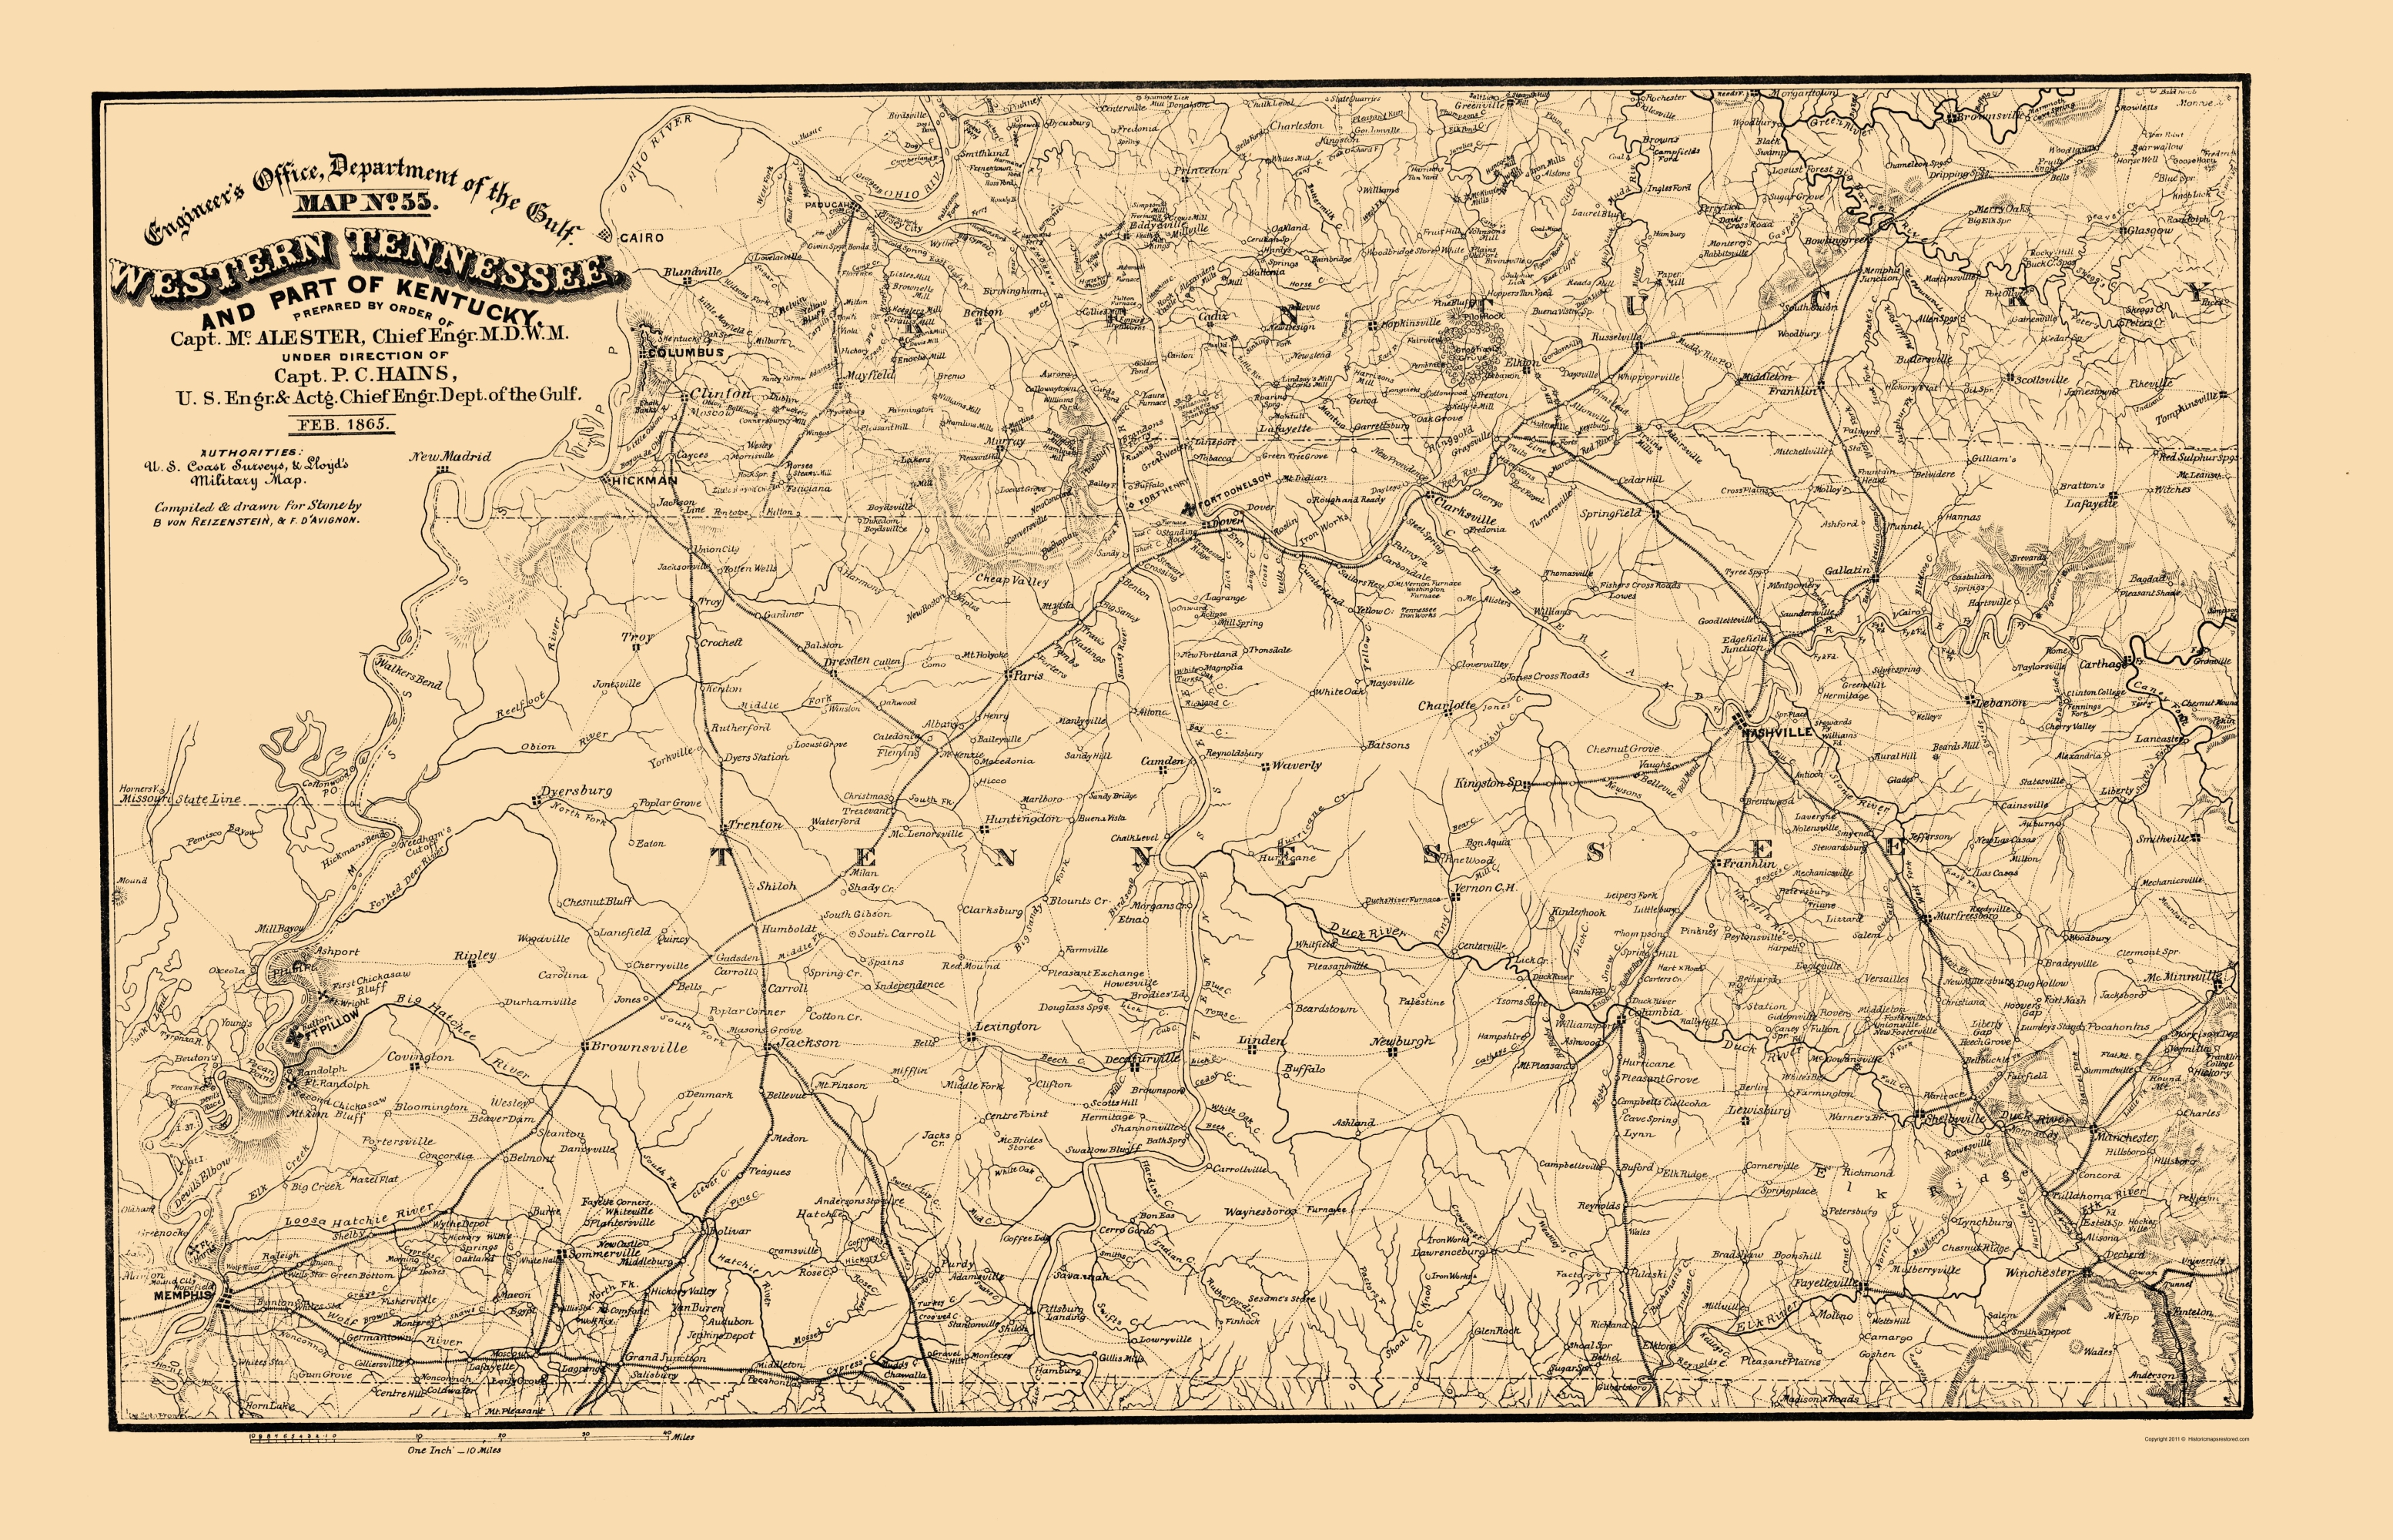 Old State Map West Tennessee Part Of Kentucky - Cumberland river on us map